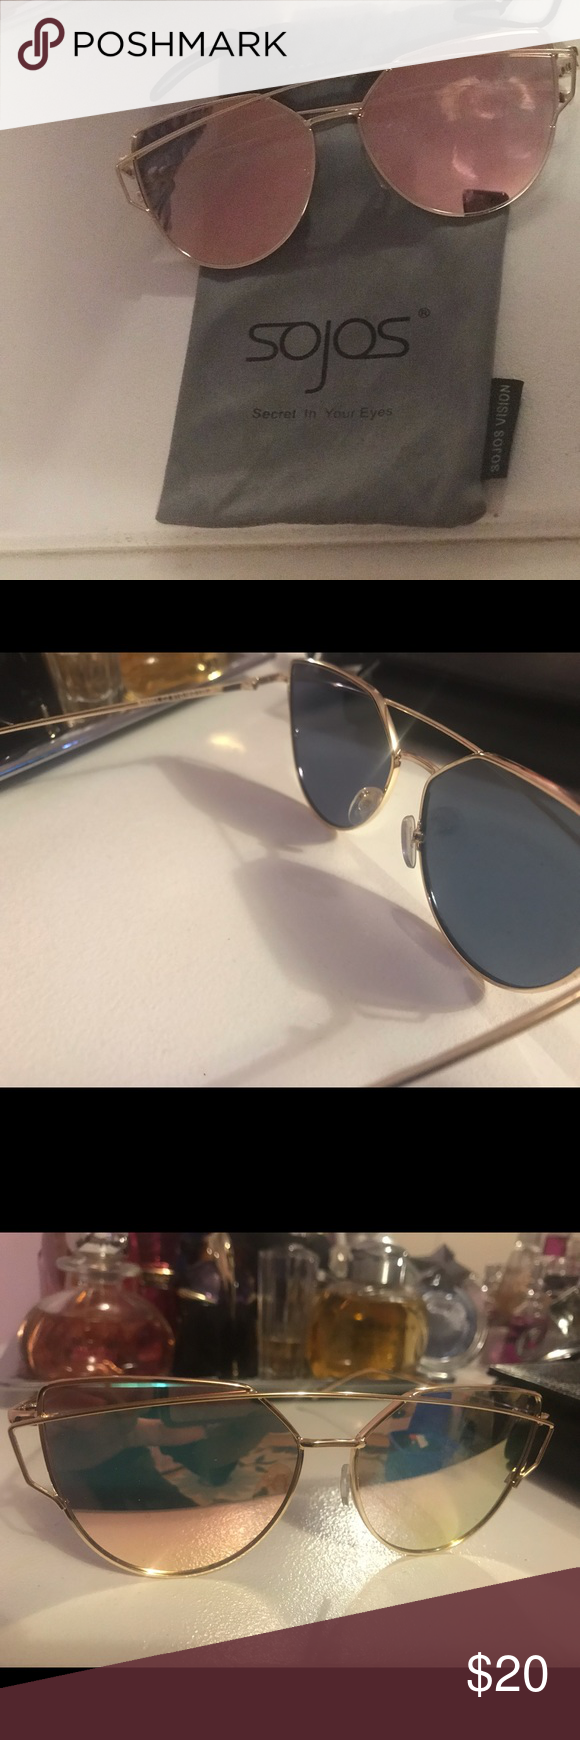 f4dc6d0aa4 SOJOS cat eyed Mirrored Sunglasses Brand new Sojos Sunglasses  rose gold  Metal frame Plastic lens